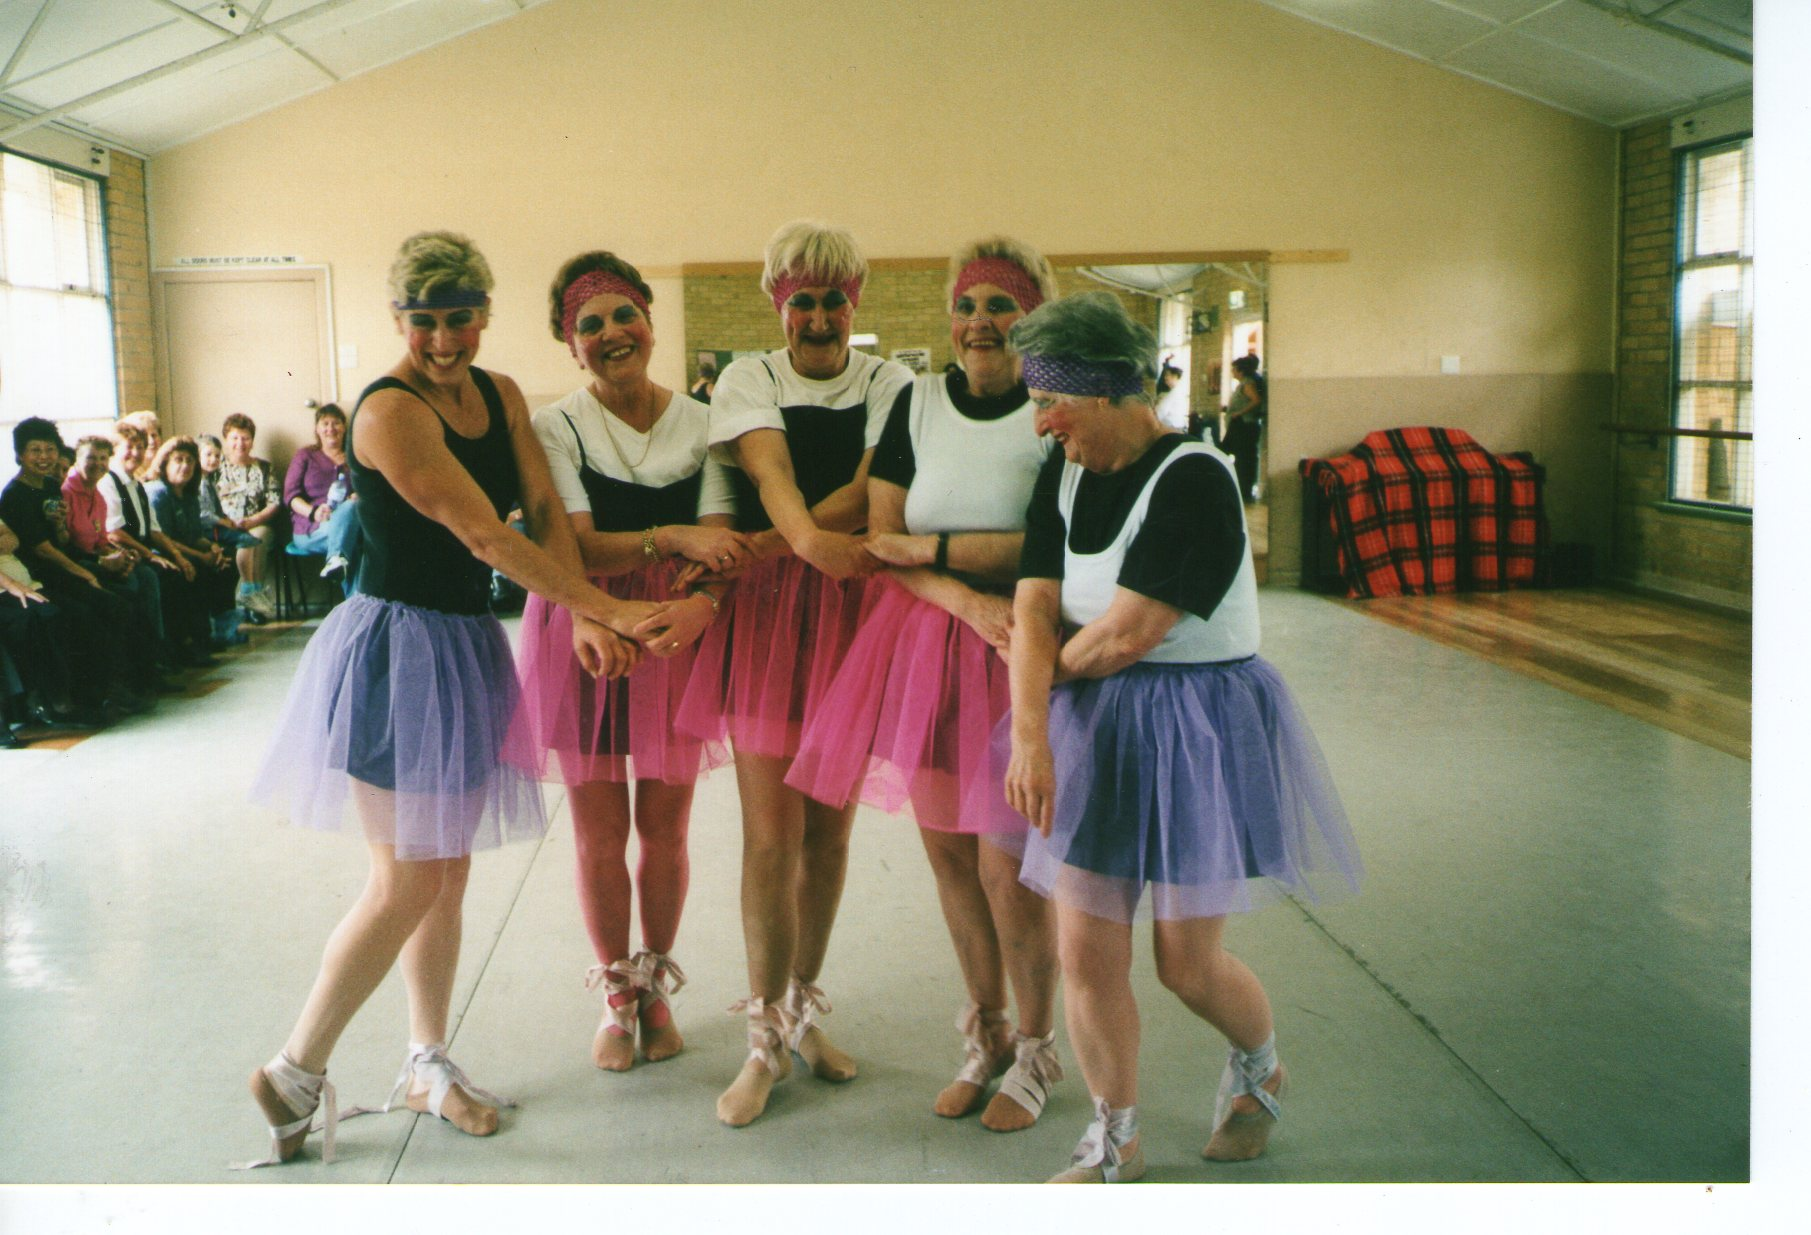 The Famous 4 tarts ballerinas